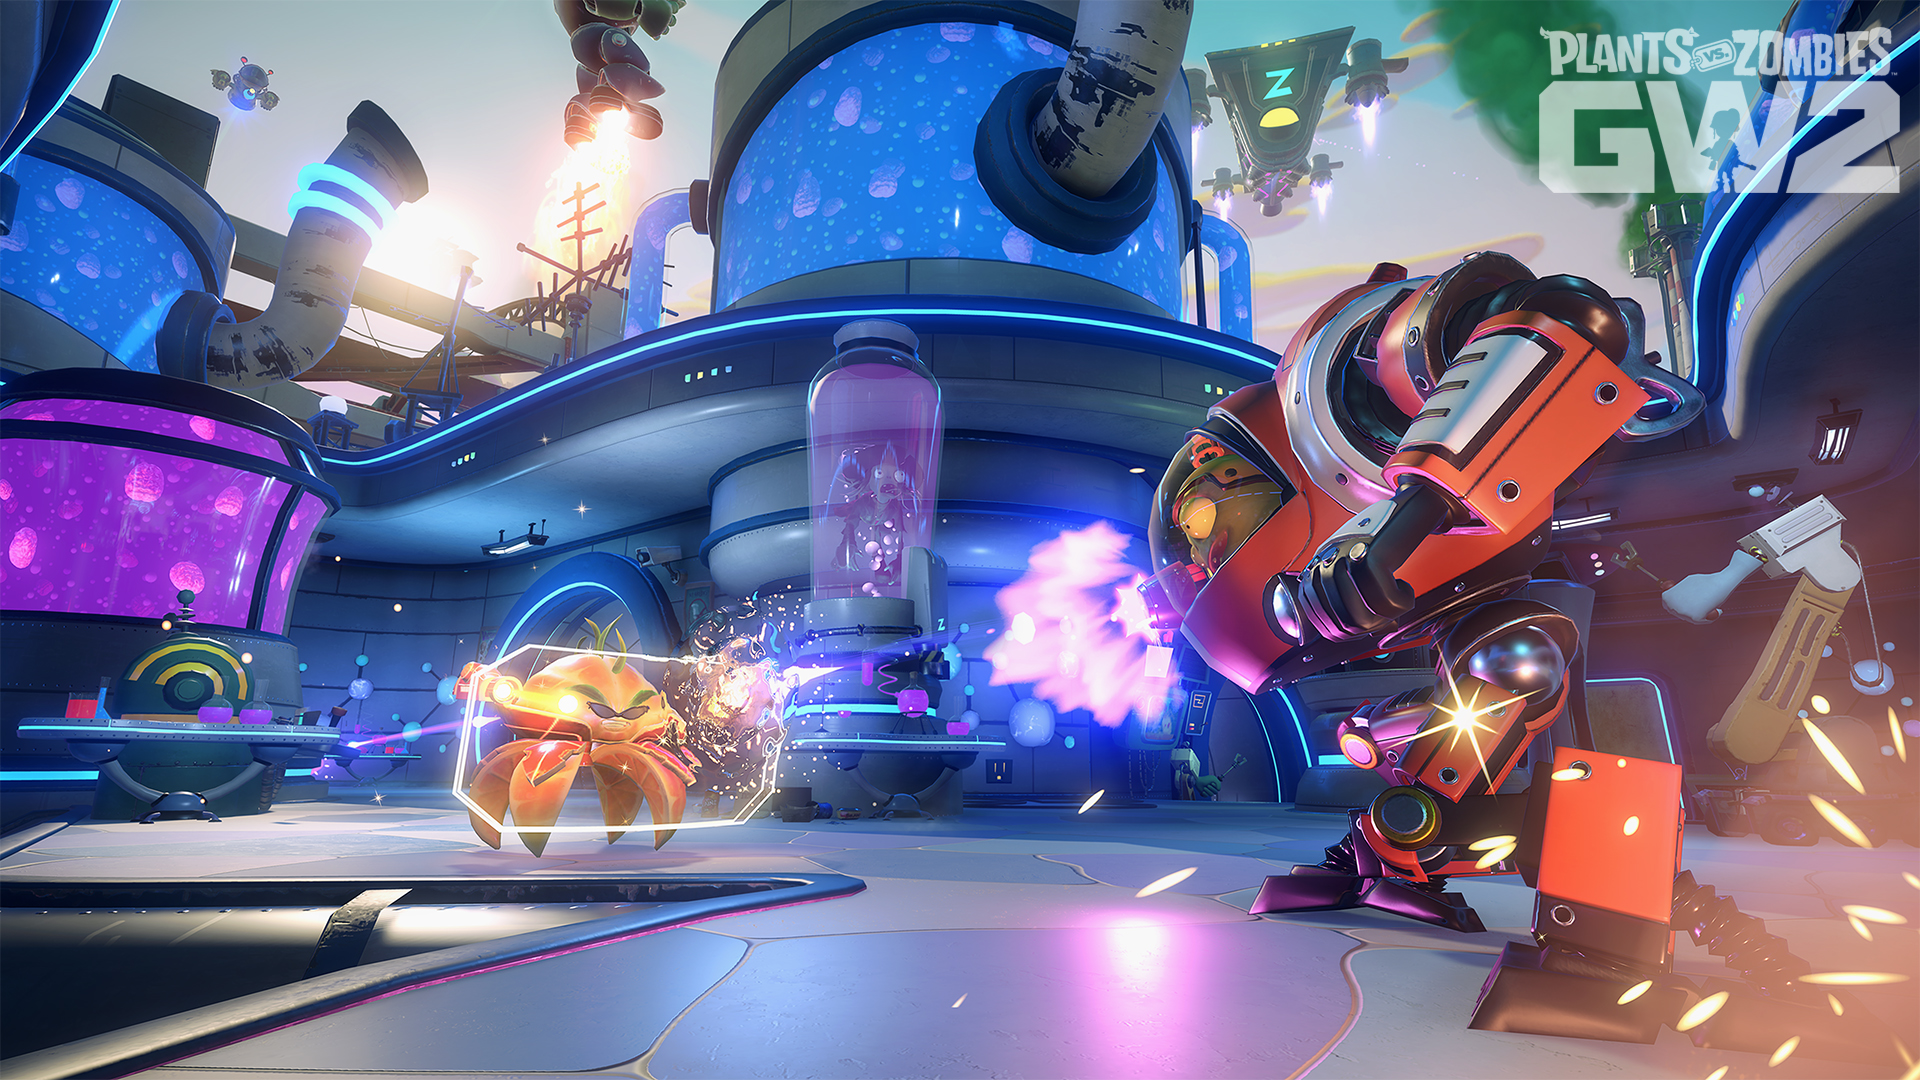 Plant Vs Zombies Garden Warfare 2 PC